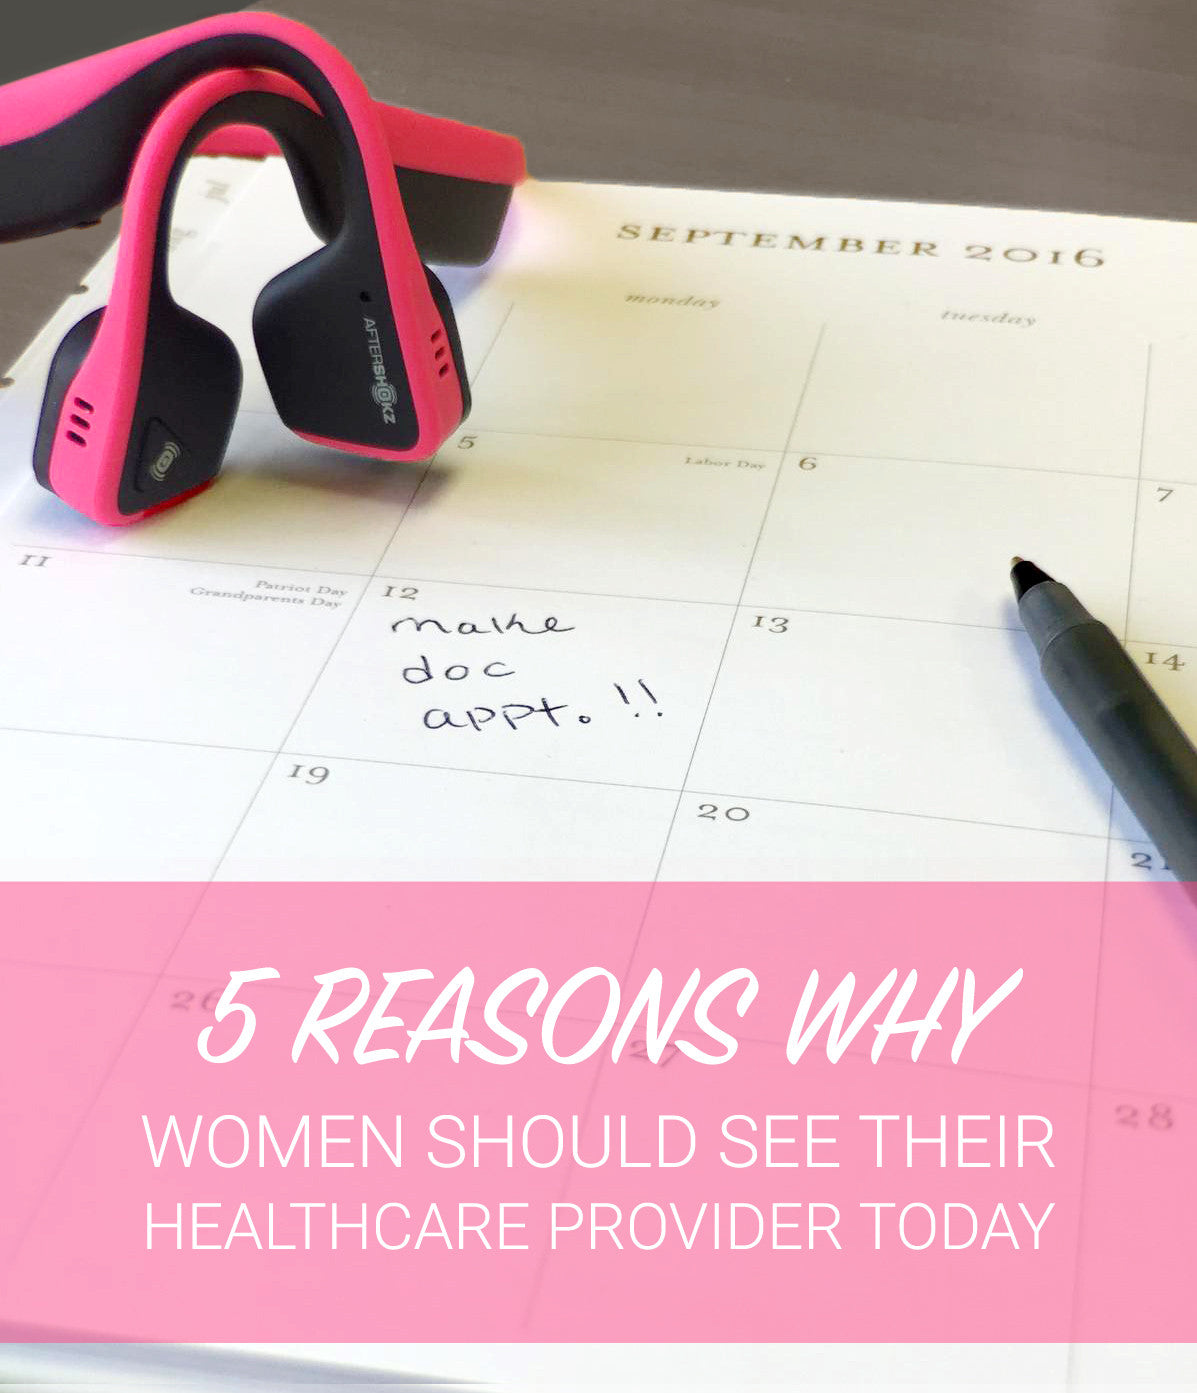 5 Reasons Why Women Should Make Routine Doctor Visits